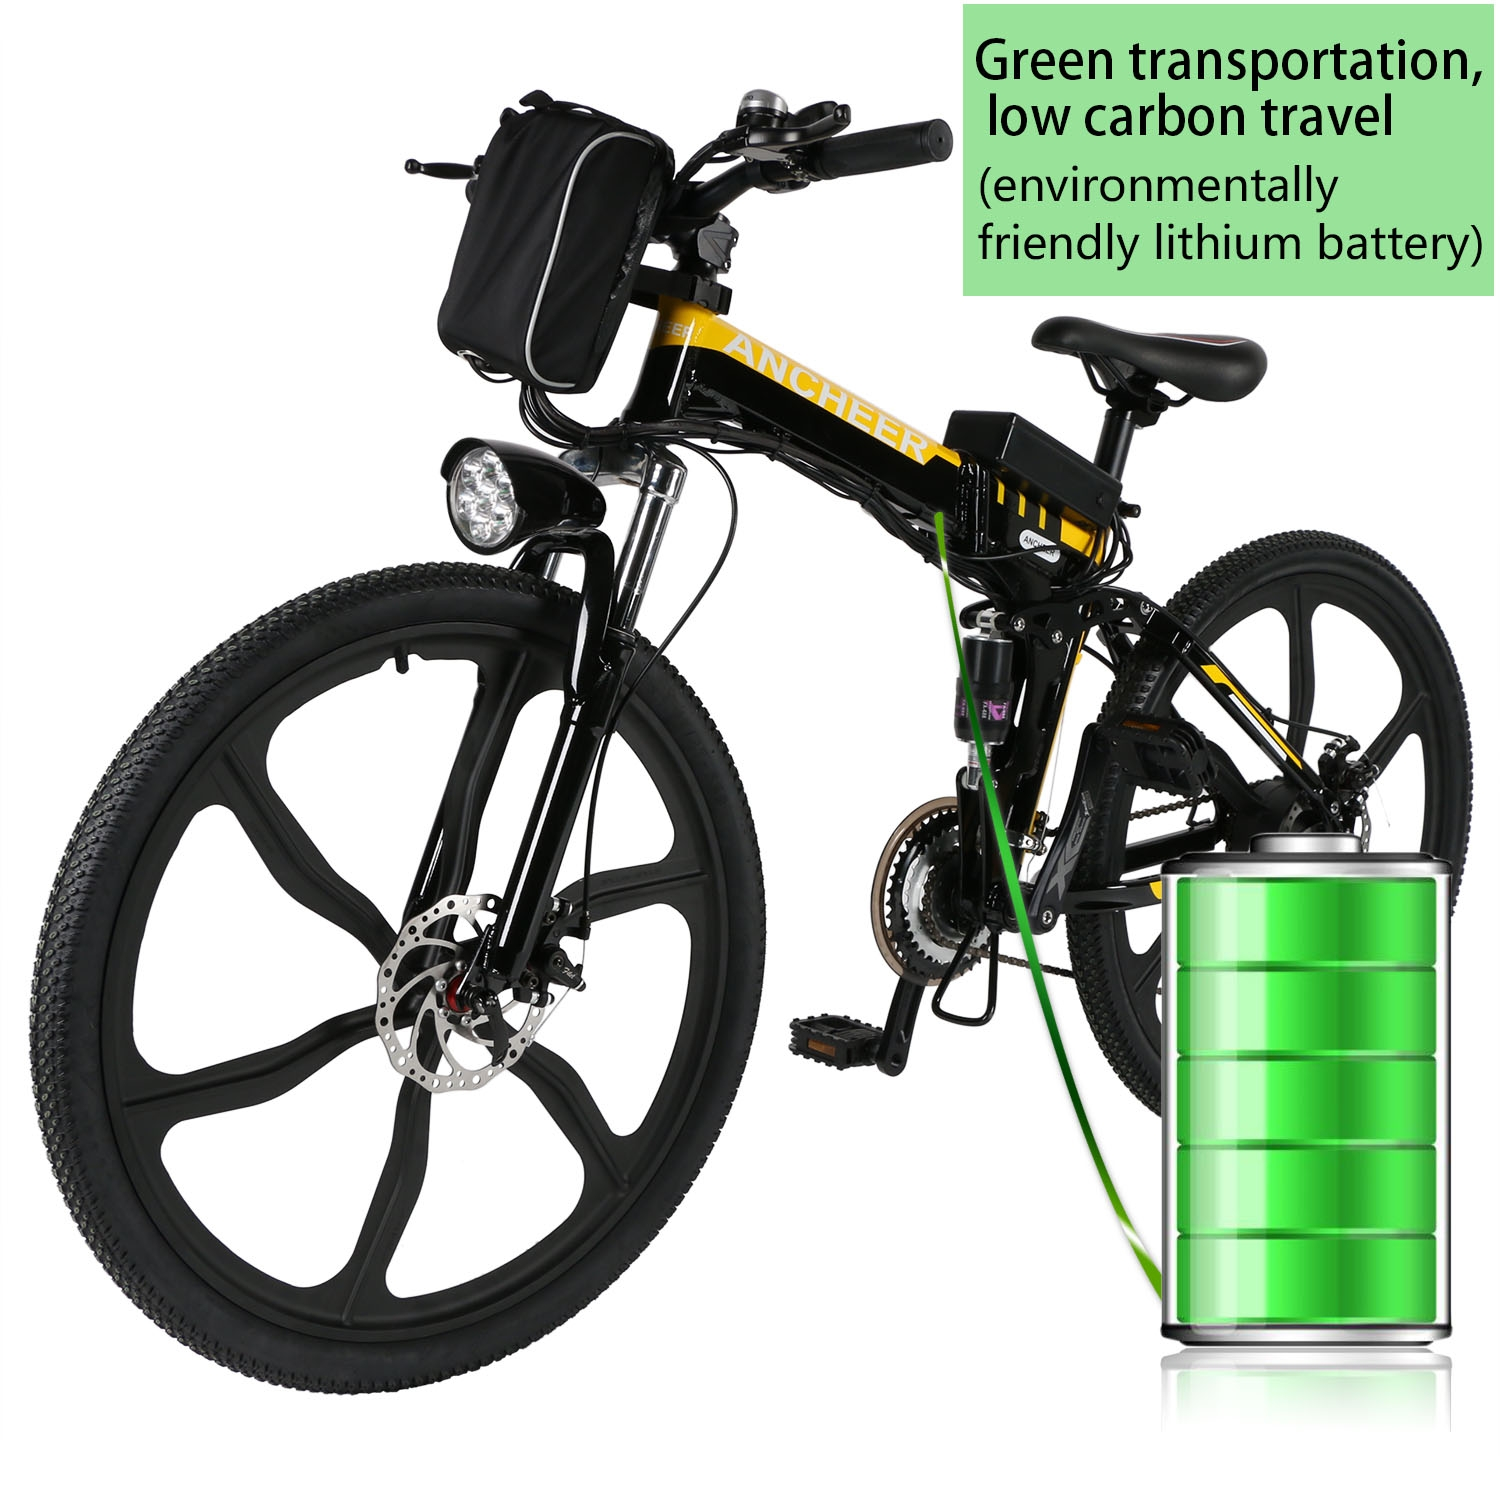 Clearance! 21 Speed 26 inch Electric Bike Power Plus Foldable Mountain Bike Bicycle HITC